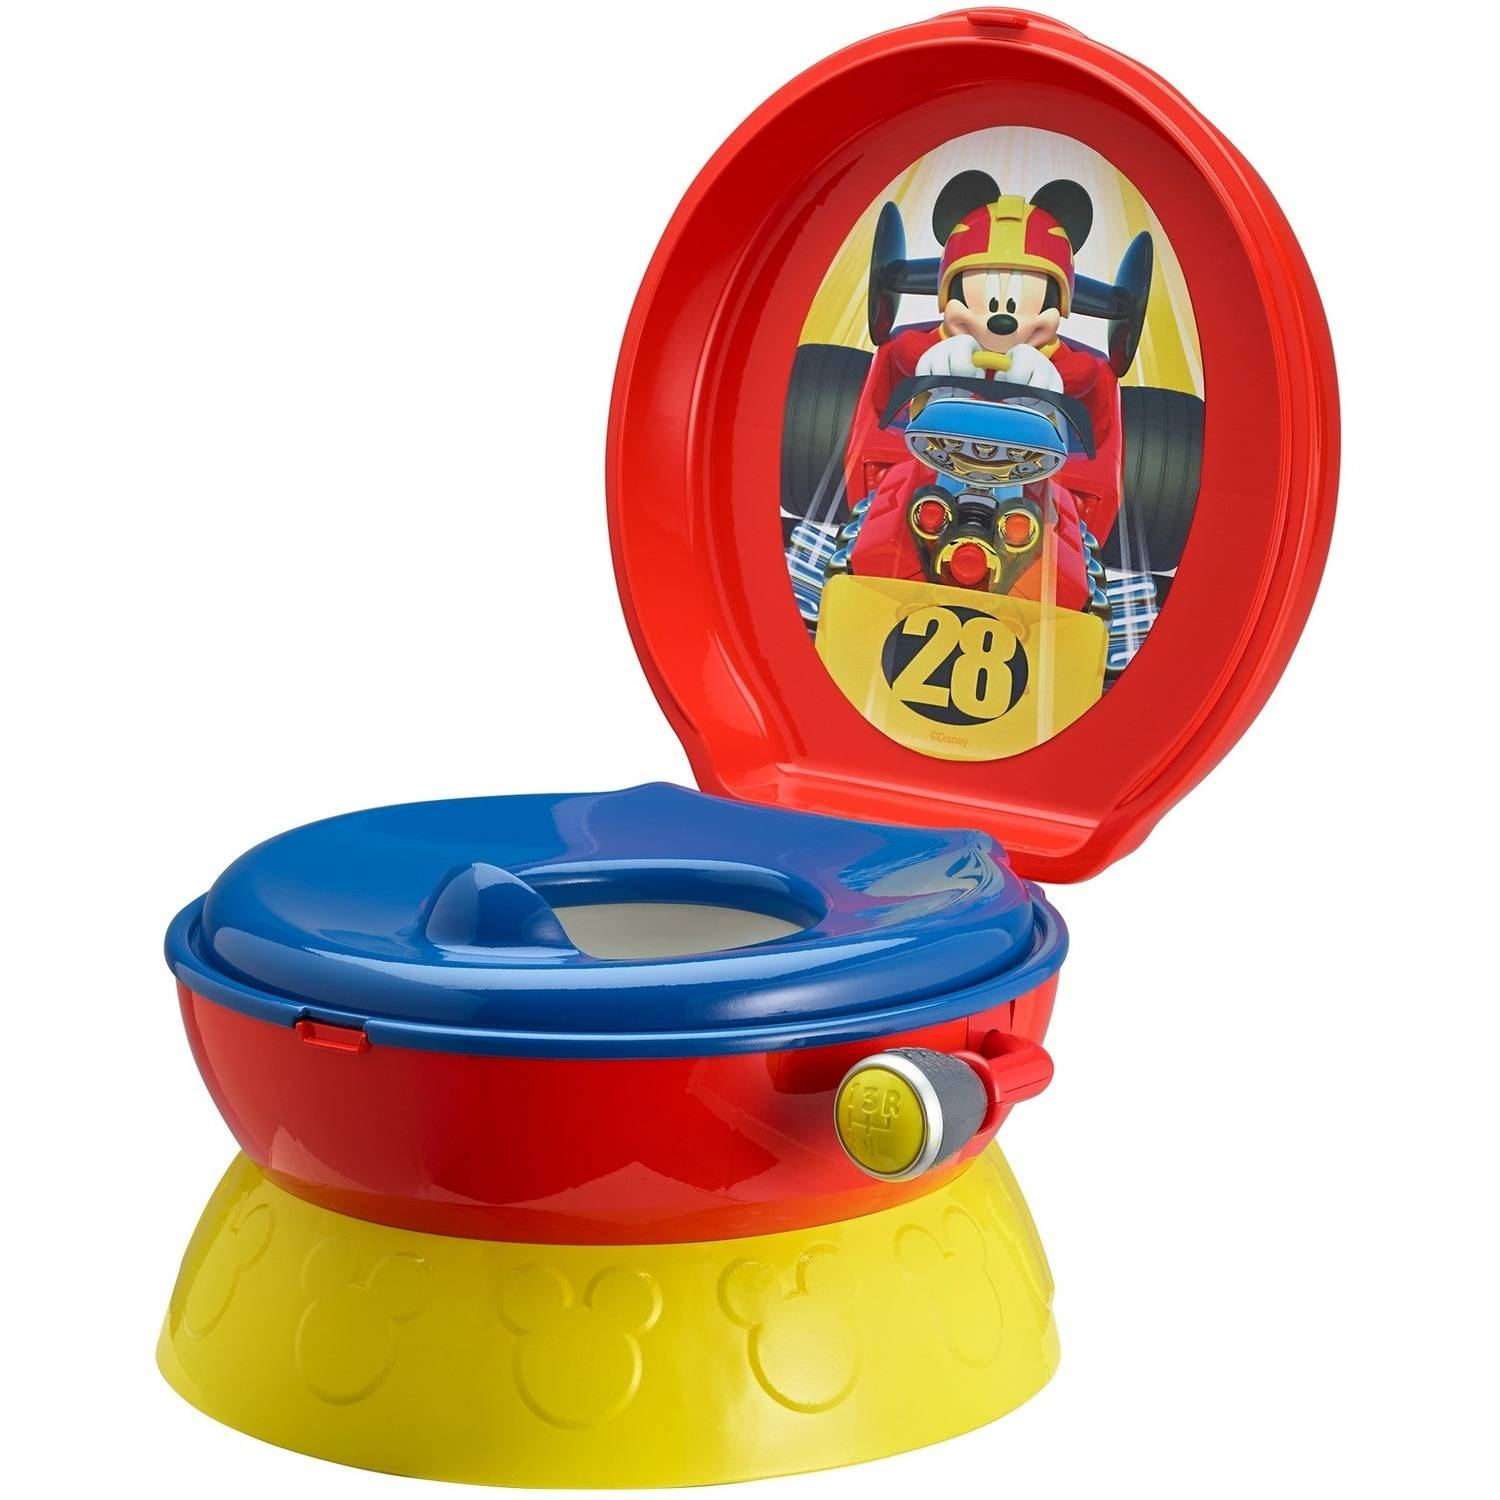 Disney Mickey Mouse 3-in-1 Potty Training Toilet, Toddler Toilet Training Set & Step Stool by The First Years